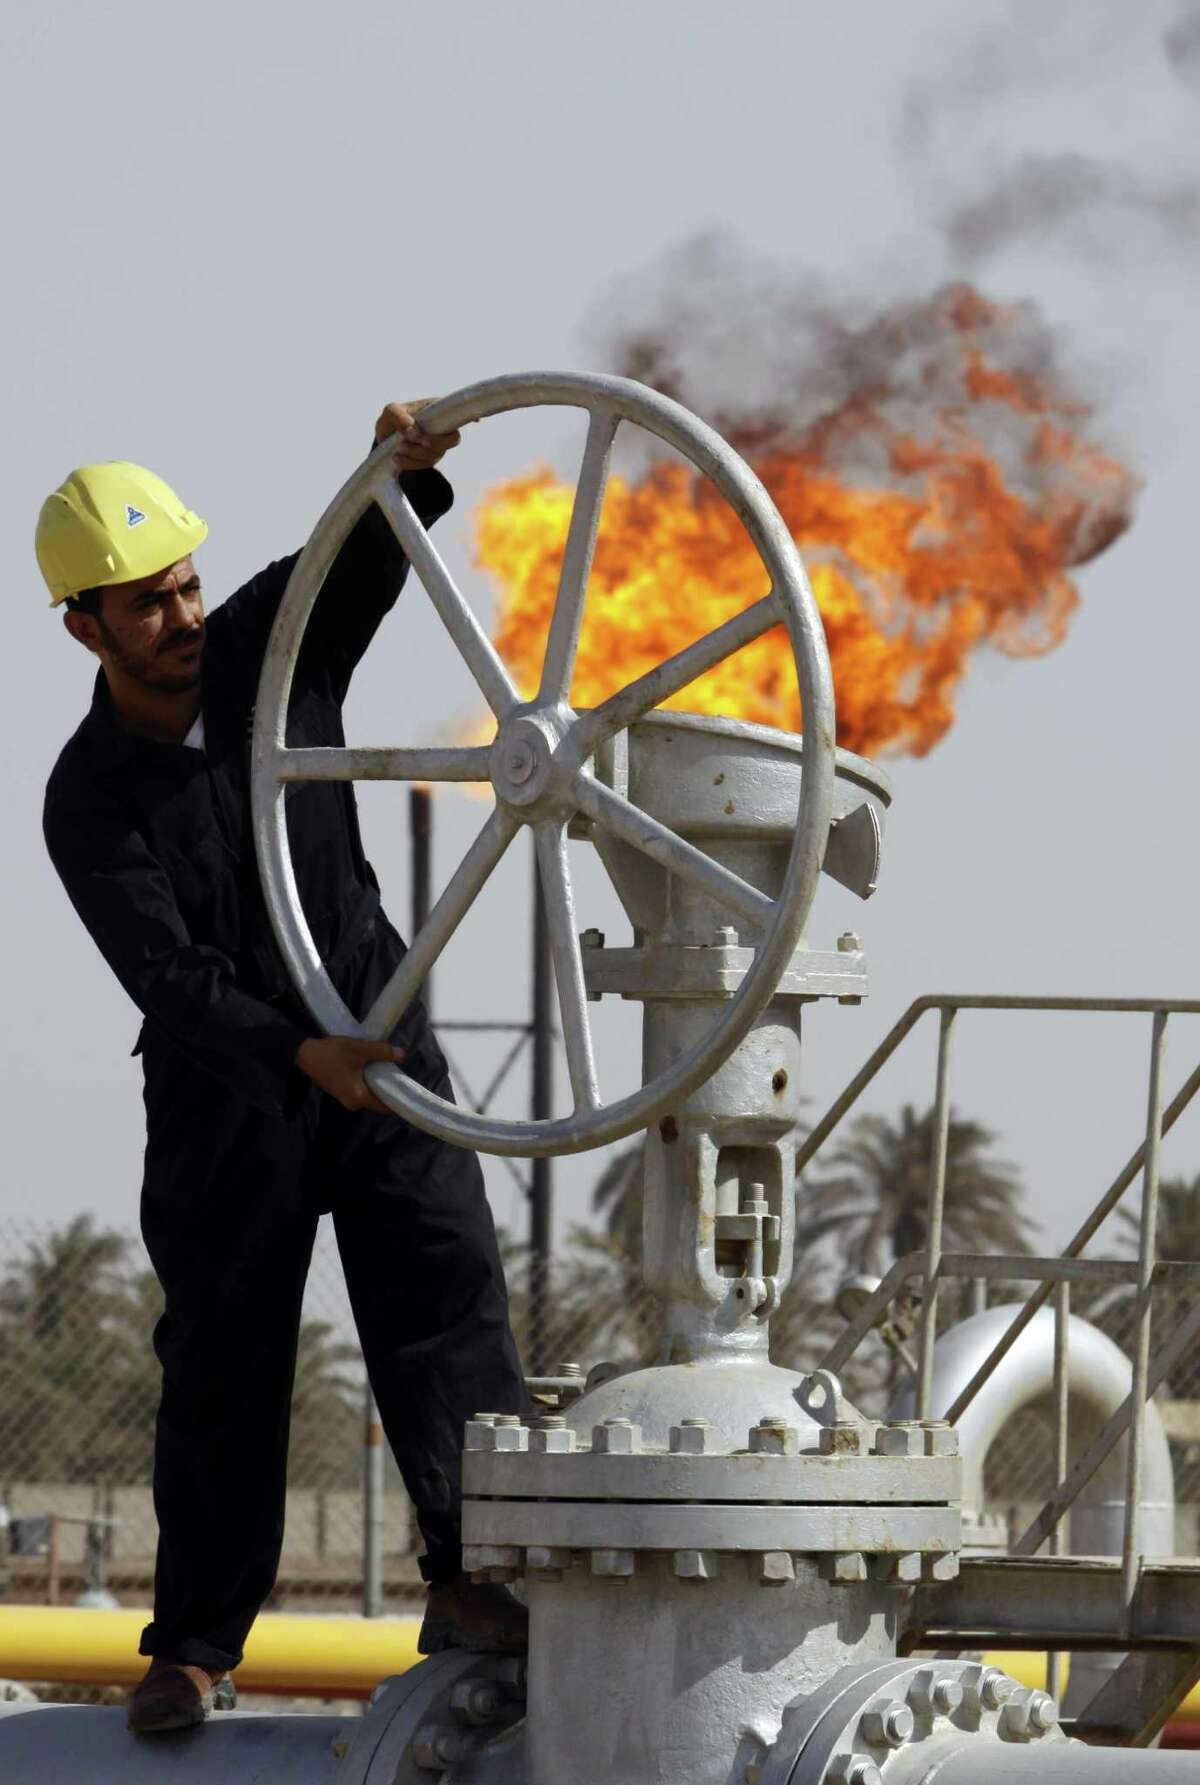 FILE - In this file photo of Friday, July 17, 2009, an Iraqi worker operates valves at the Nahran Omar oil refinery in Zubair near the city of Basra, 340 miles (550 kilometers) southeast of Baghdad, Iraq. The turmoil in Iraq has thrown the OPEC member?'s ambitious plans to boost oil production into doubt, threatening to crimp its most vital economic lifeline. Northern oil fields imperiled by the militants?' advance have been shut down, and companies have begun evacuating workers elsewhere in the country. Iraq?'s Kurdish minority has moved to solidify control over the northern oil-rich city of Kirkuk and other disputed areas, weakening Baghdad?'s claims to the energy riches buried beneath while bolstering the Kurds?' aspirations of greater autonomy. (AP Photo/Nabil al-Jurani, File) ORG XMIT: BAG103